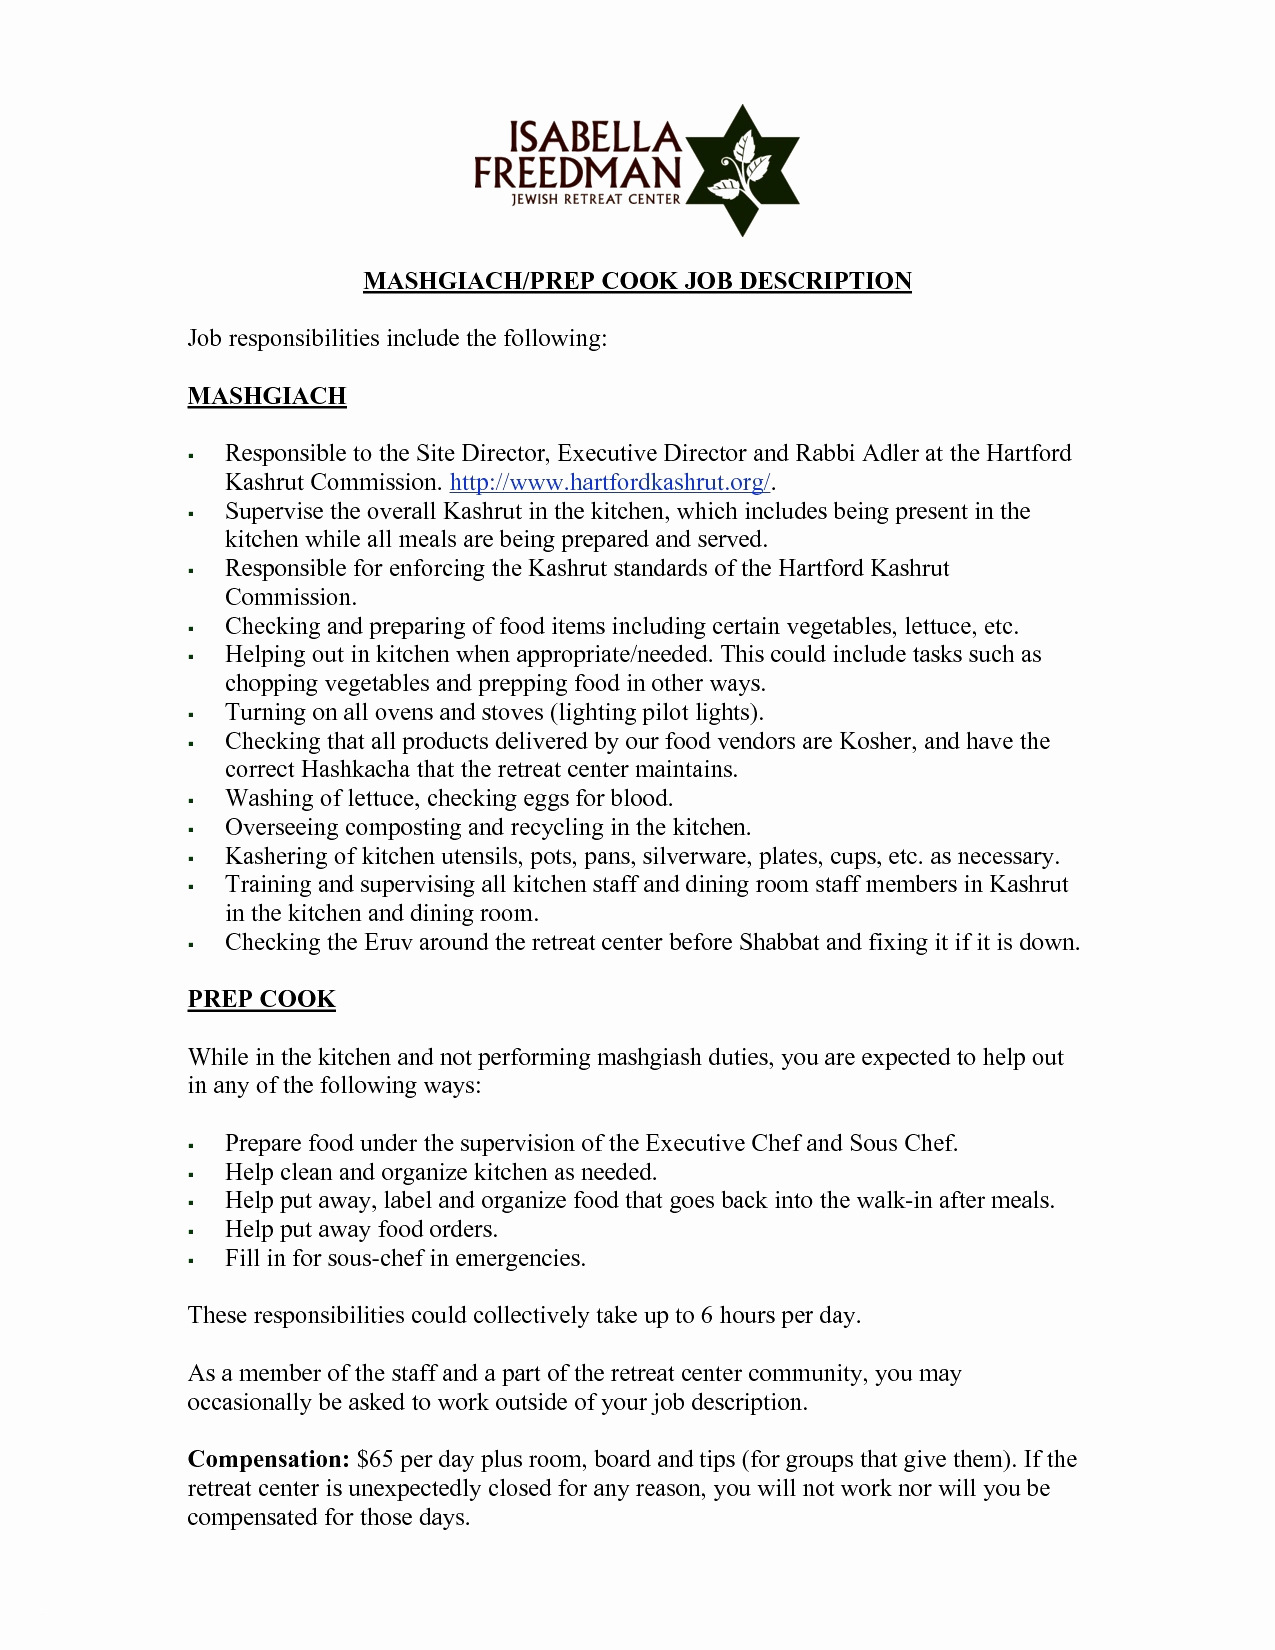 engineering cover letter template example-Resume Templates Engineering Fresh Resume and Cover Letter Template Fresh Od Specialist Sample Resume 8-o